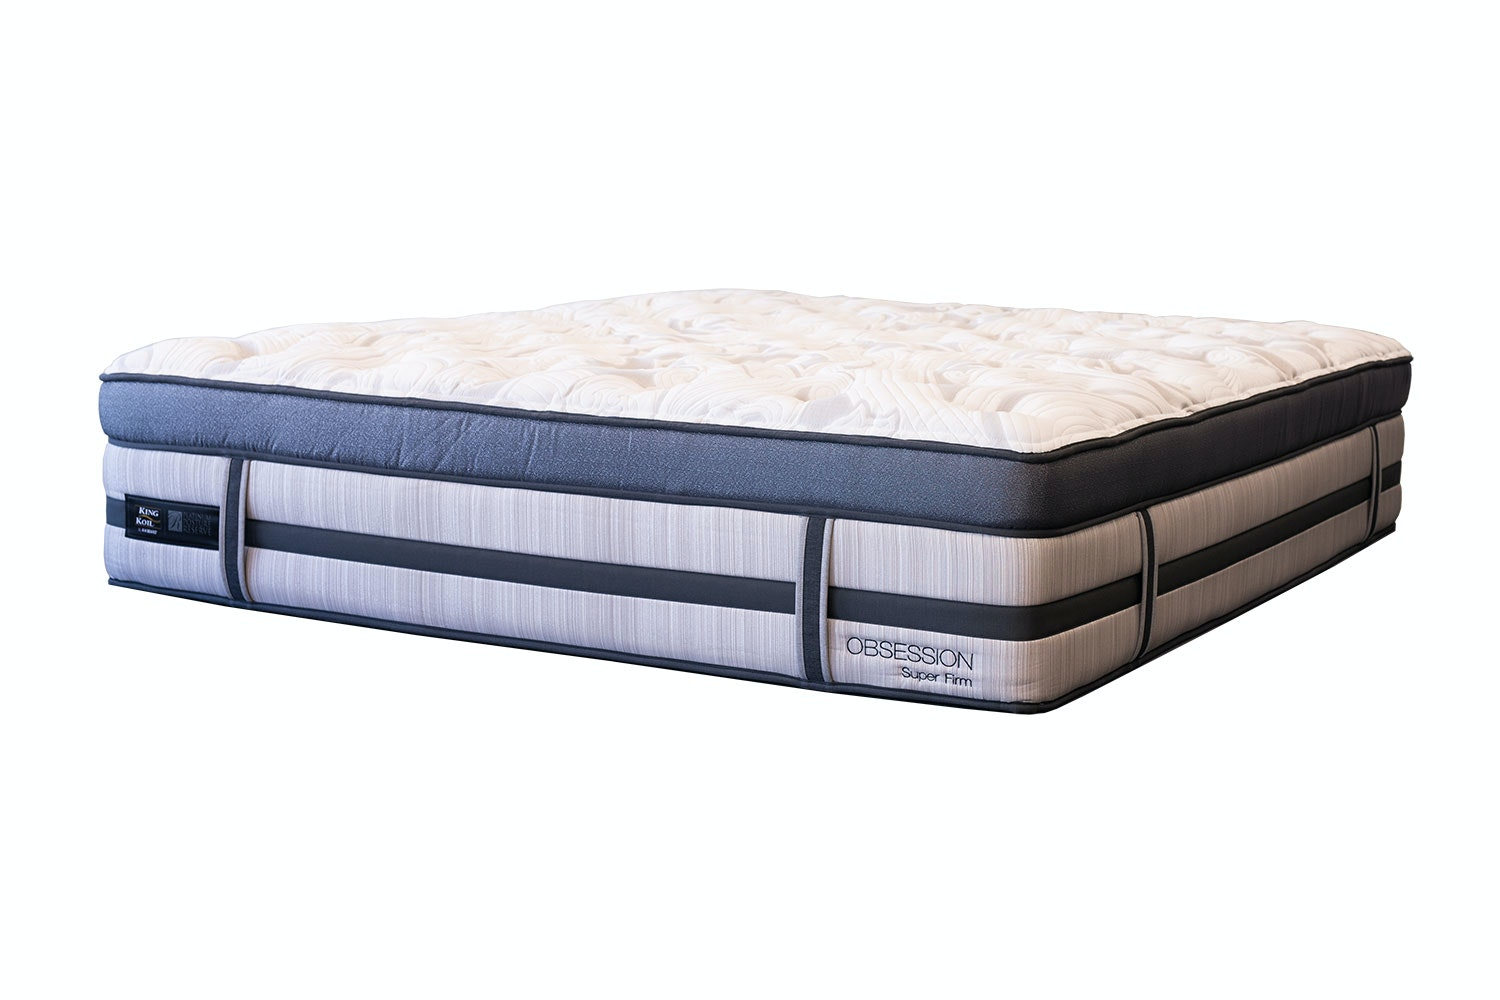 Obsession Super Firm Californian King Mattress by King Koil